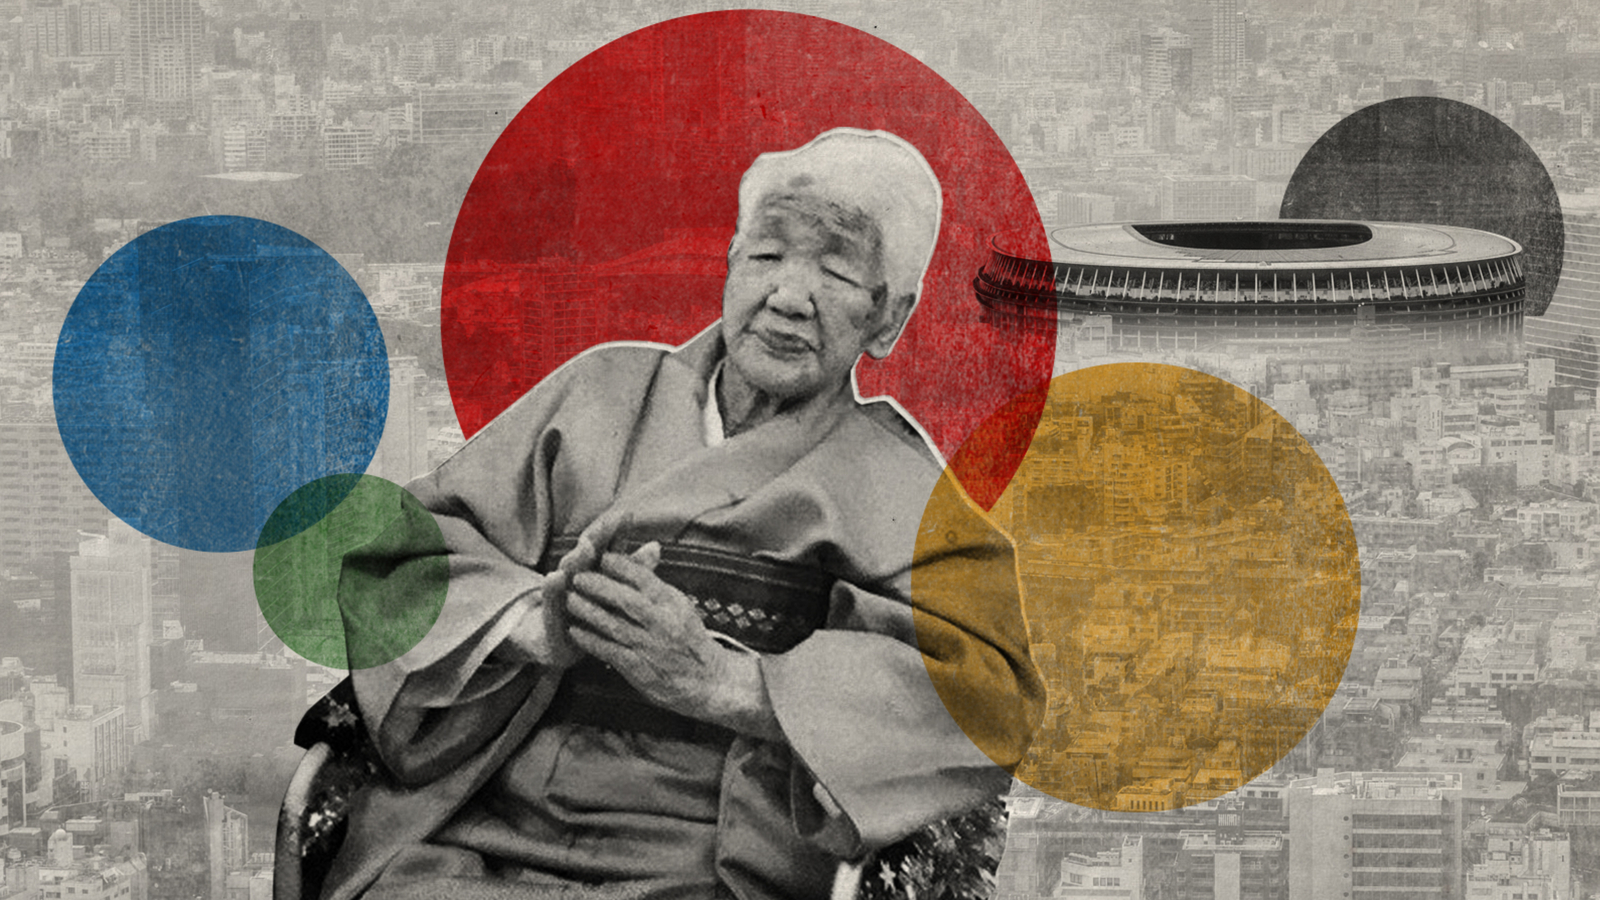 CNN Exclusive: Aged 118, the world's oldest living person will carry the Olympic flame in Japan